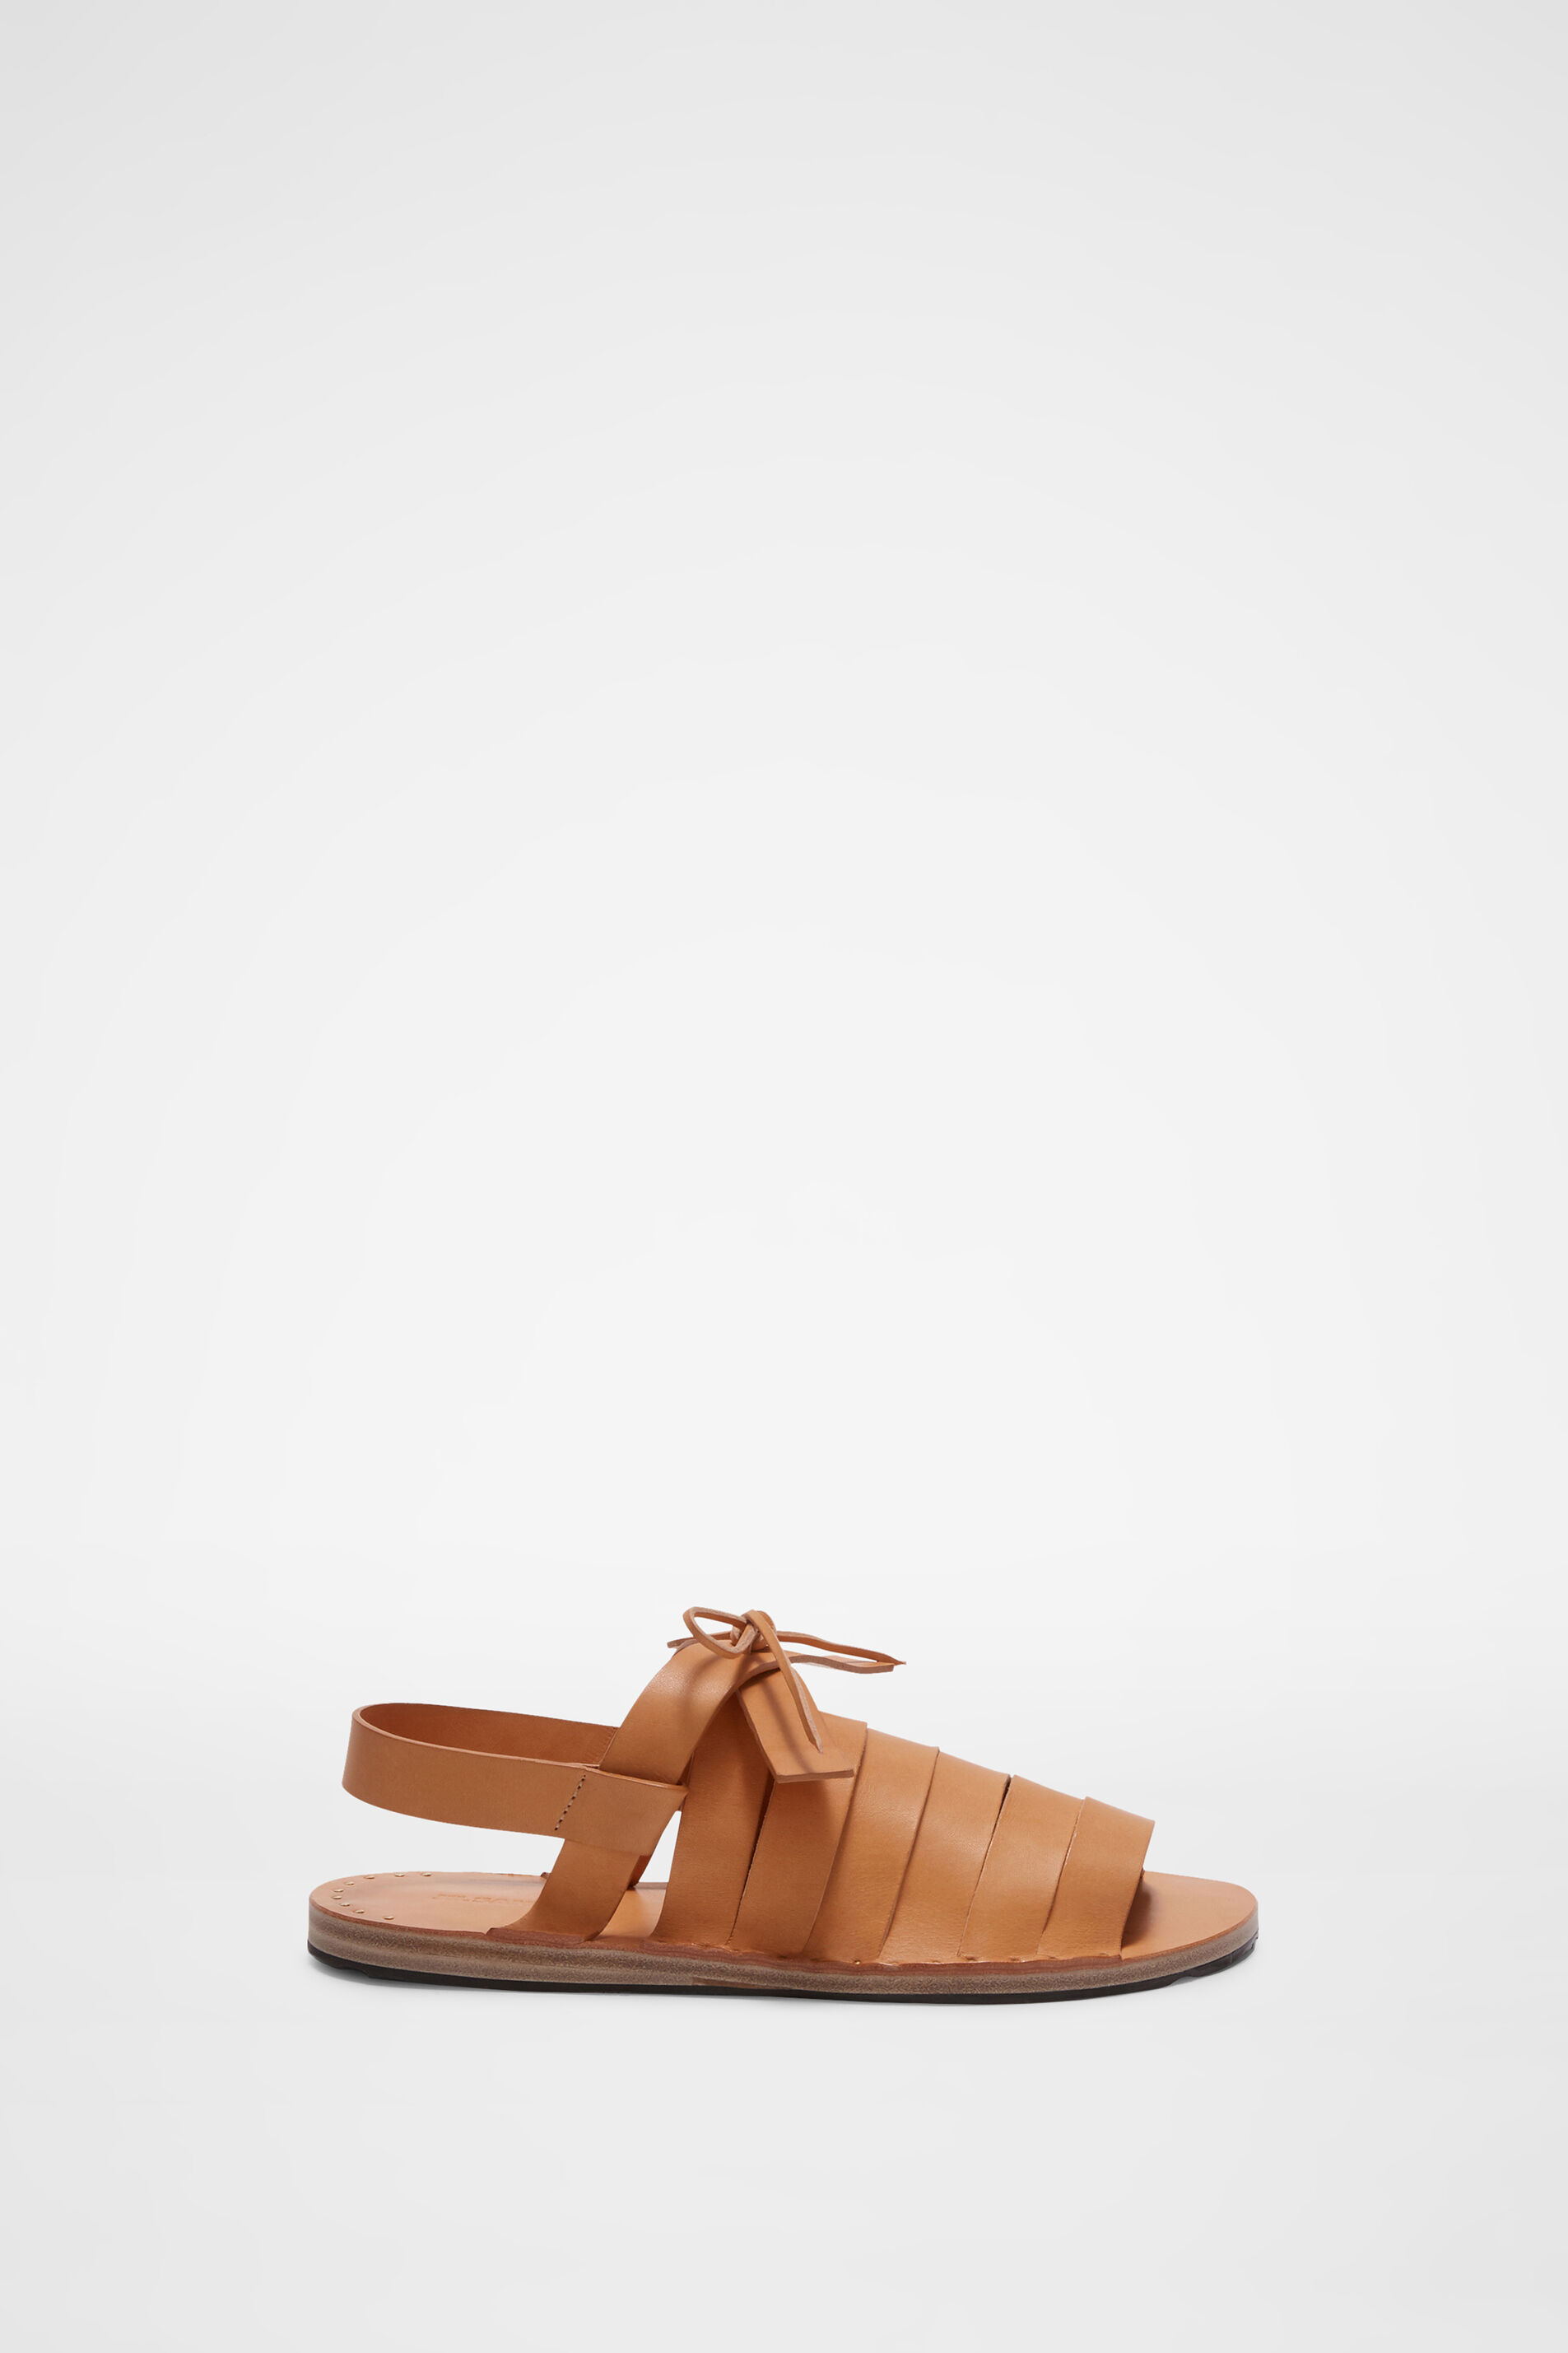 Sandals, copper, large